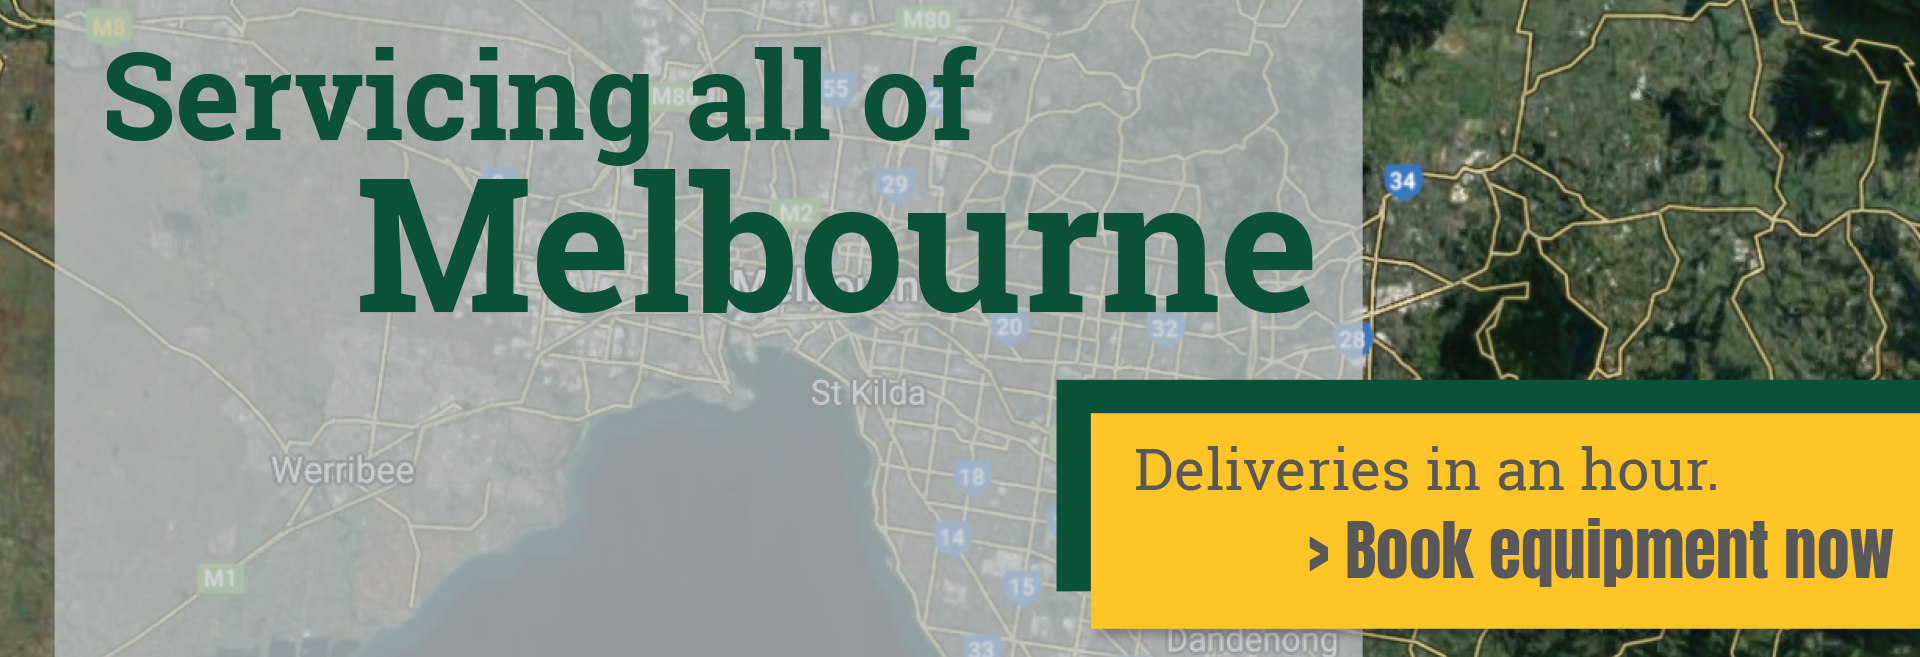 Servicing all of Melbourne